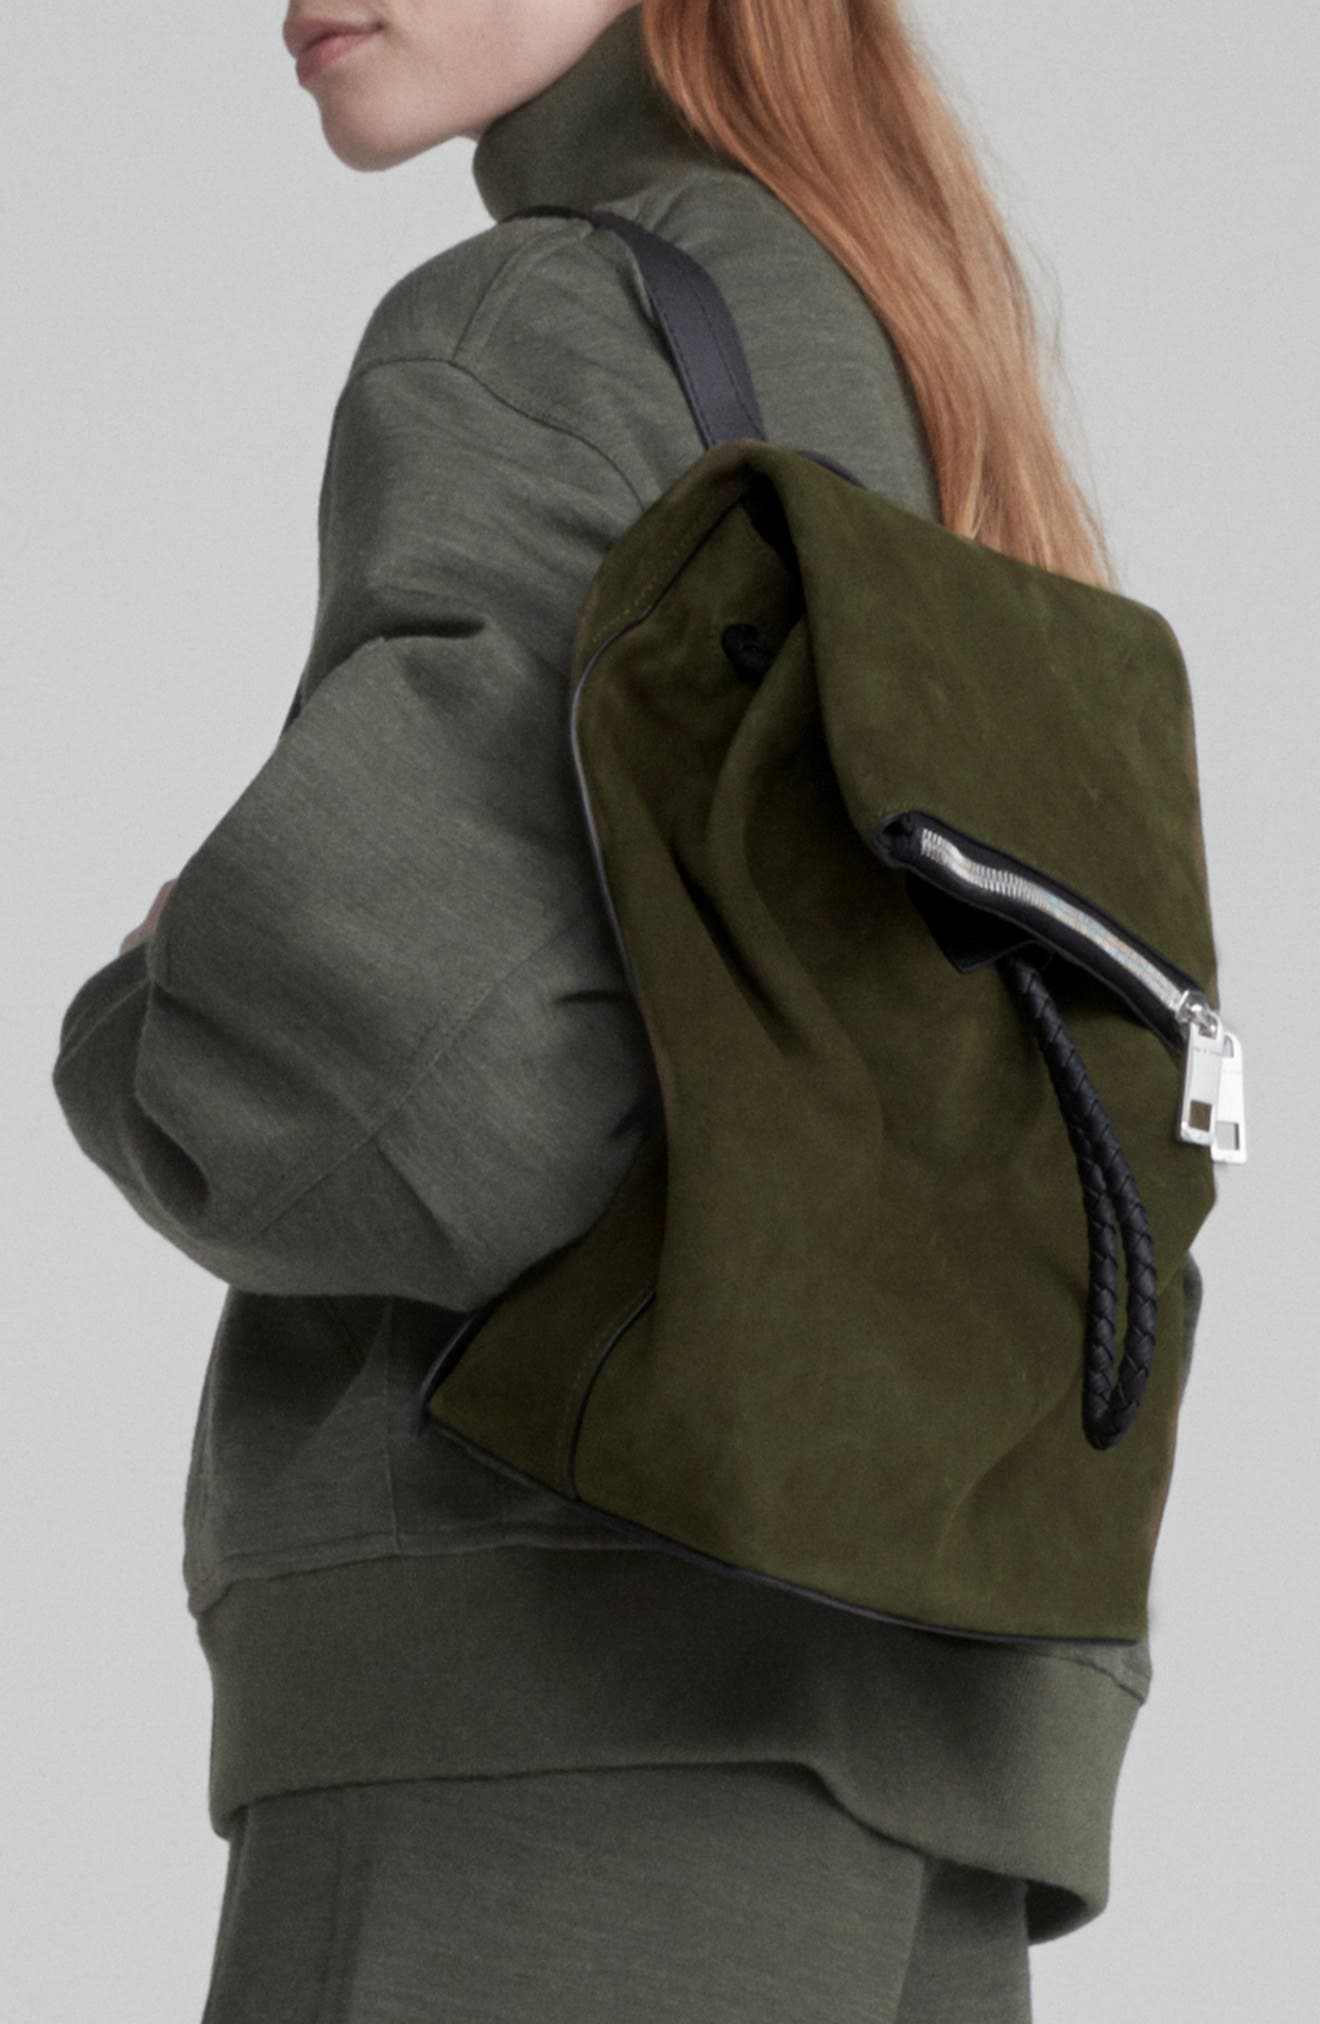 Loner Leather Backpack,                             Alternate thumbnail 2, color,                             OLIVE NIGHT SUEDE